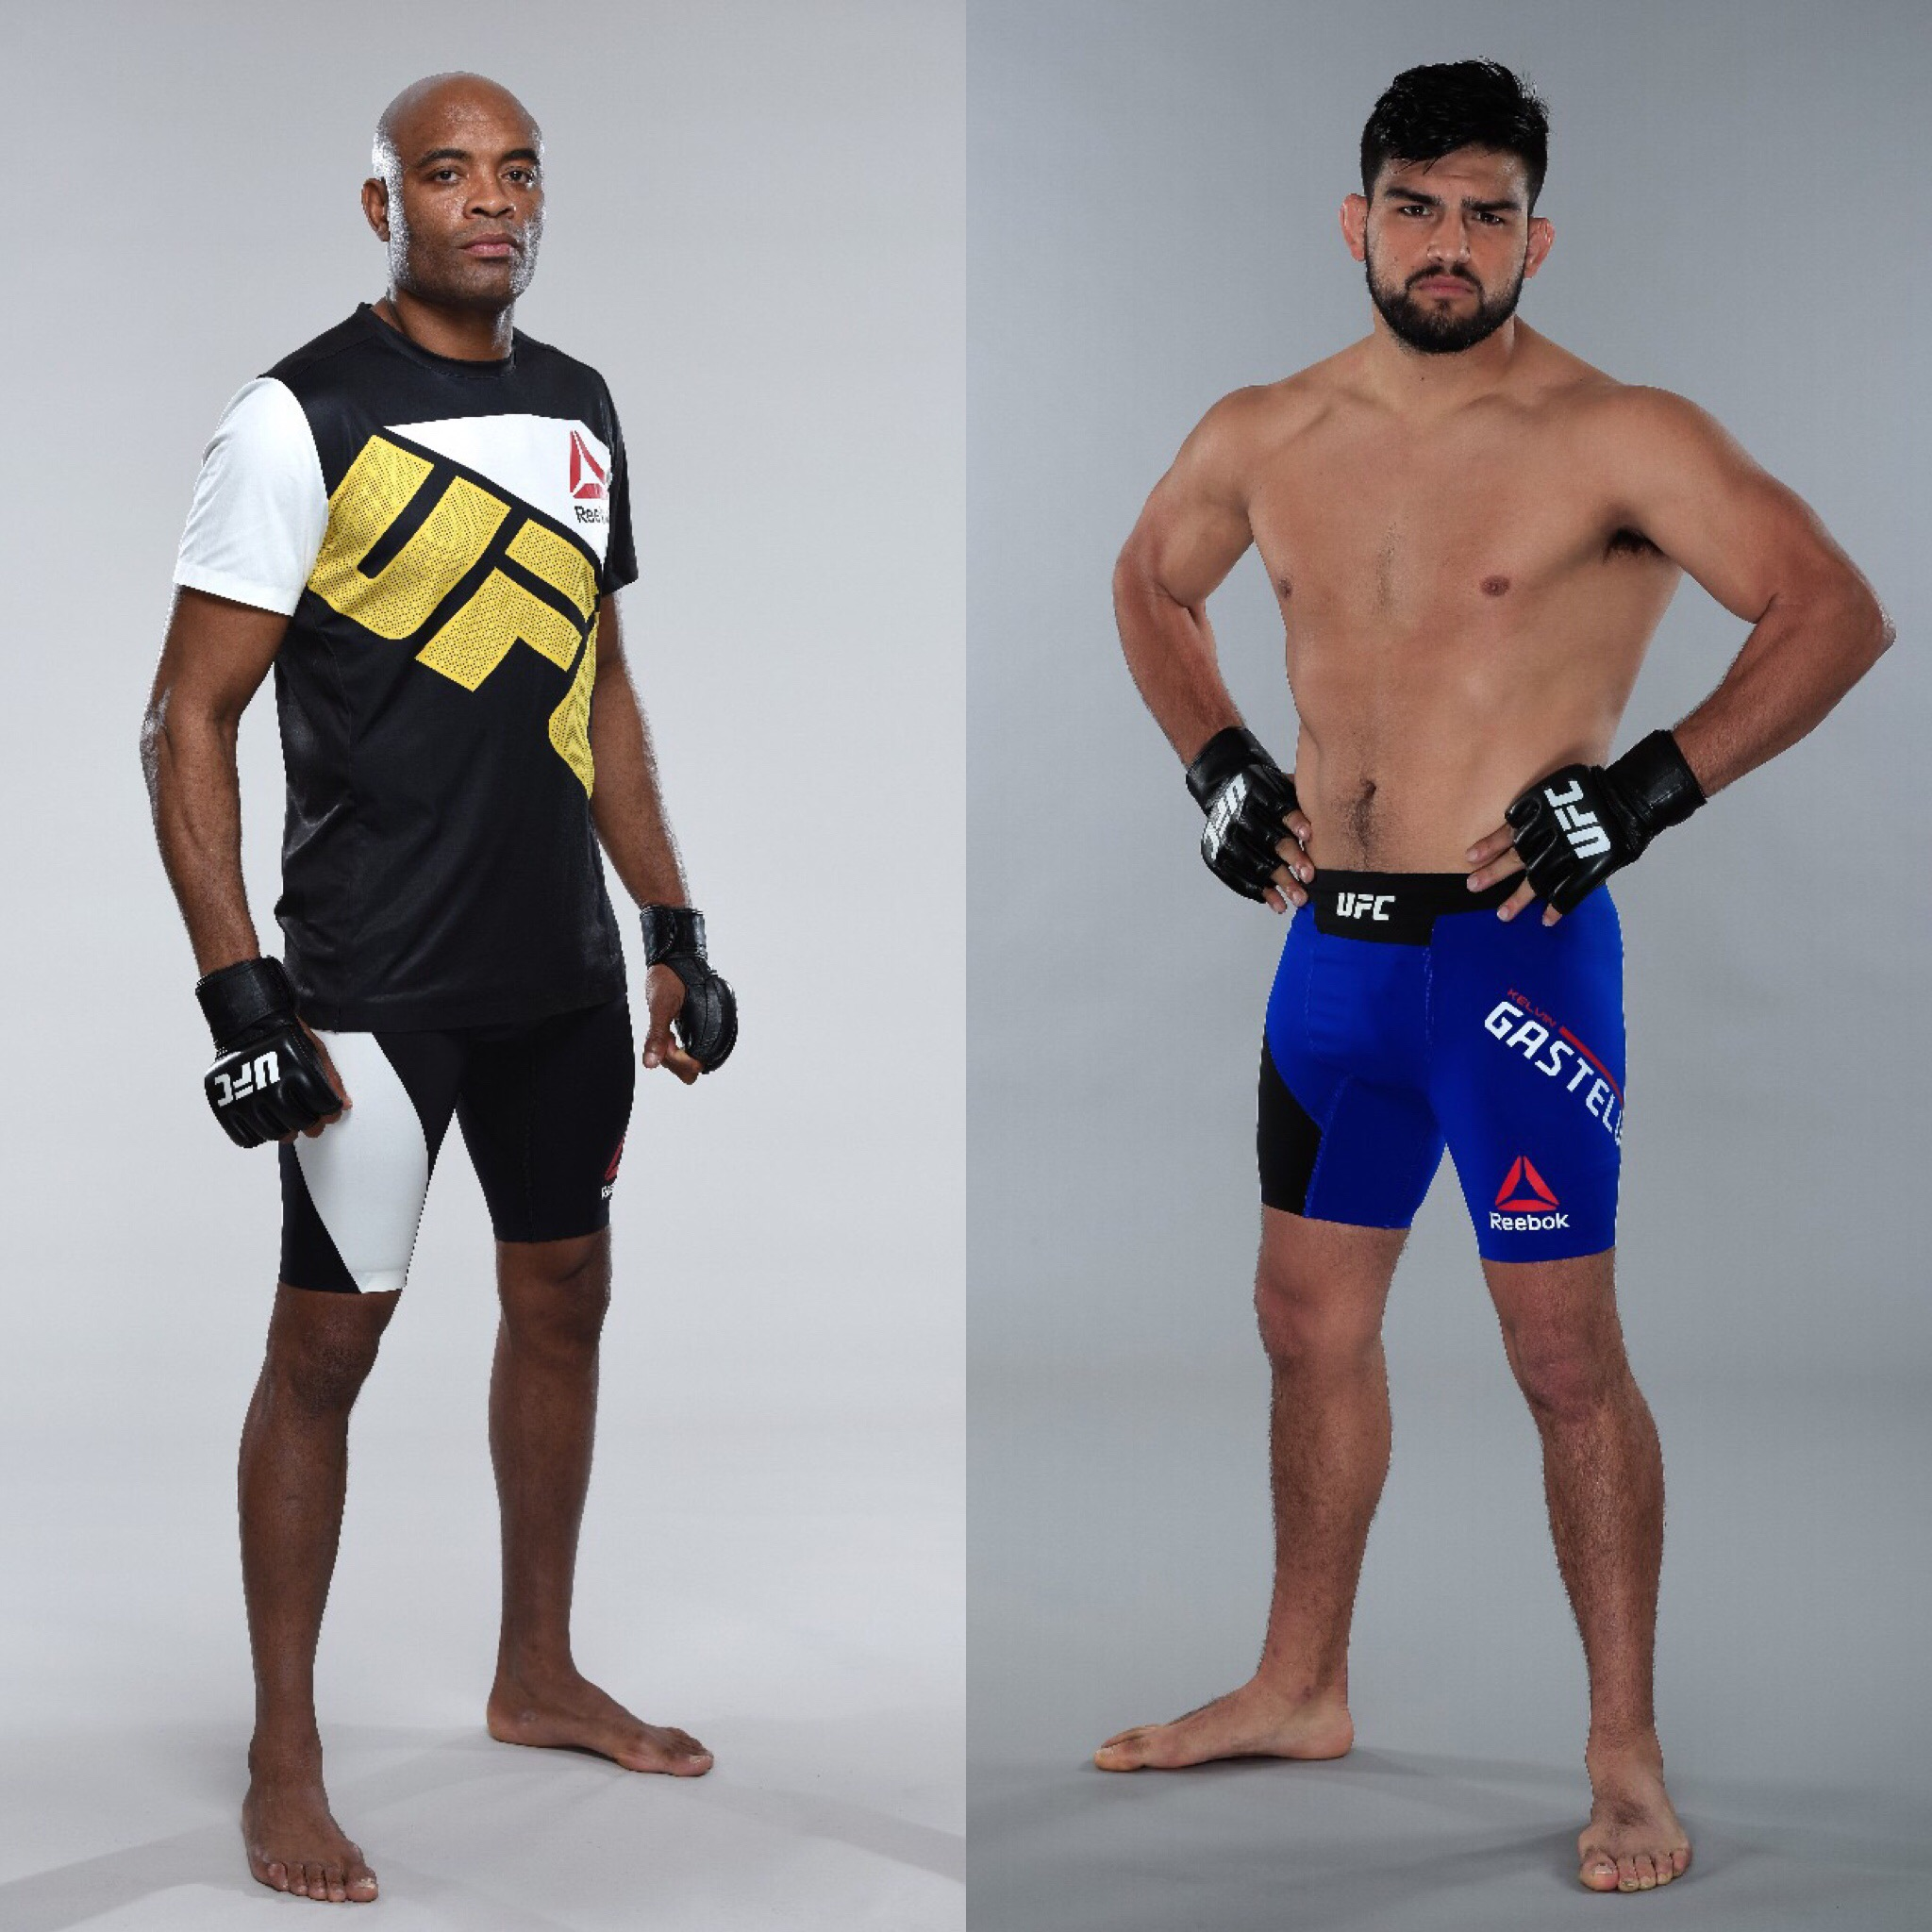 Anderson Silva and <a href='../fighter/Kelvin-Gastelum'>Kelvin Gastelum</a> will meet in the Octagon on Saturday, Nov. 25 live on UFC FIGHT PASS